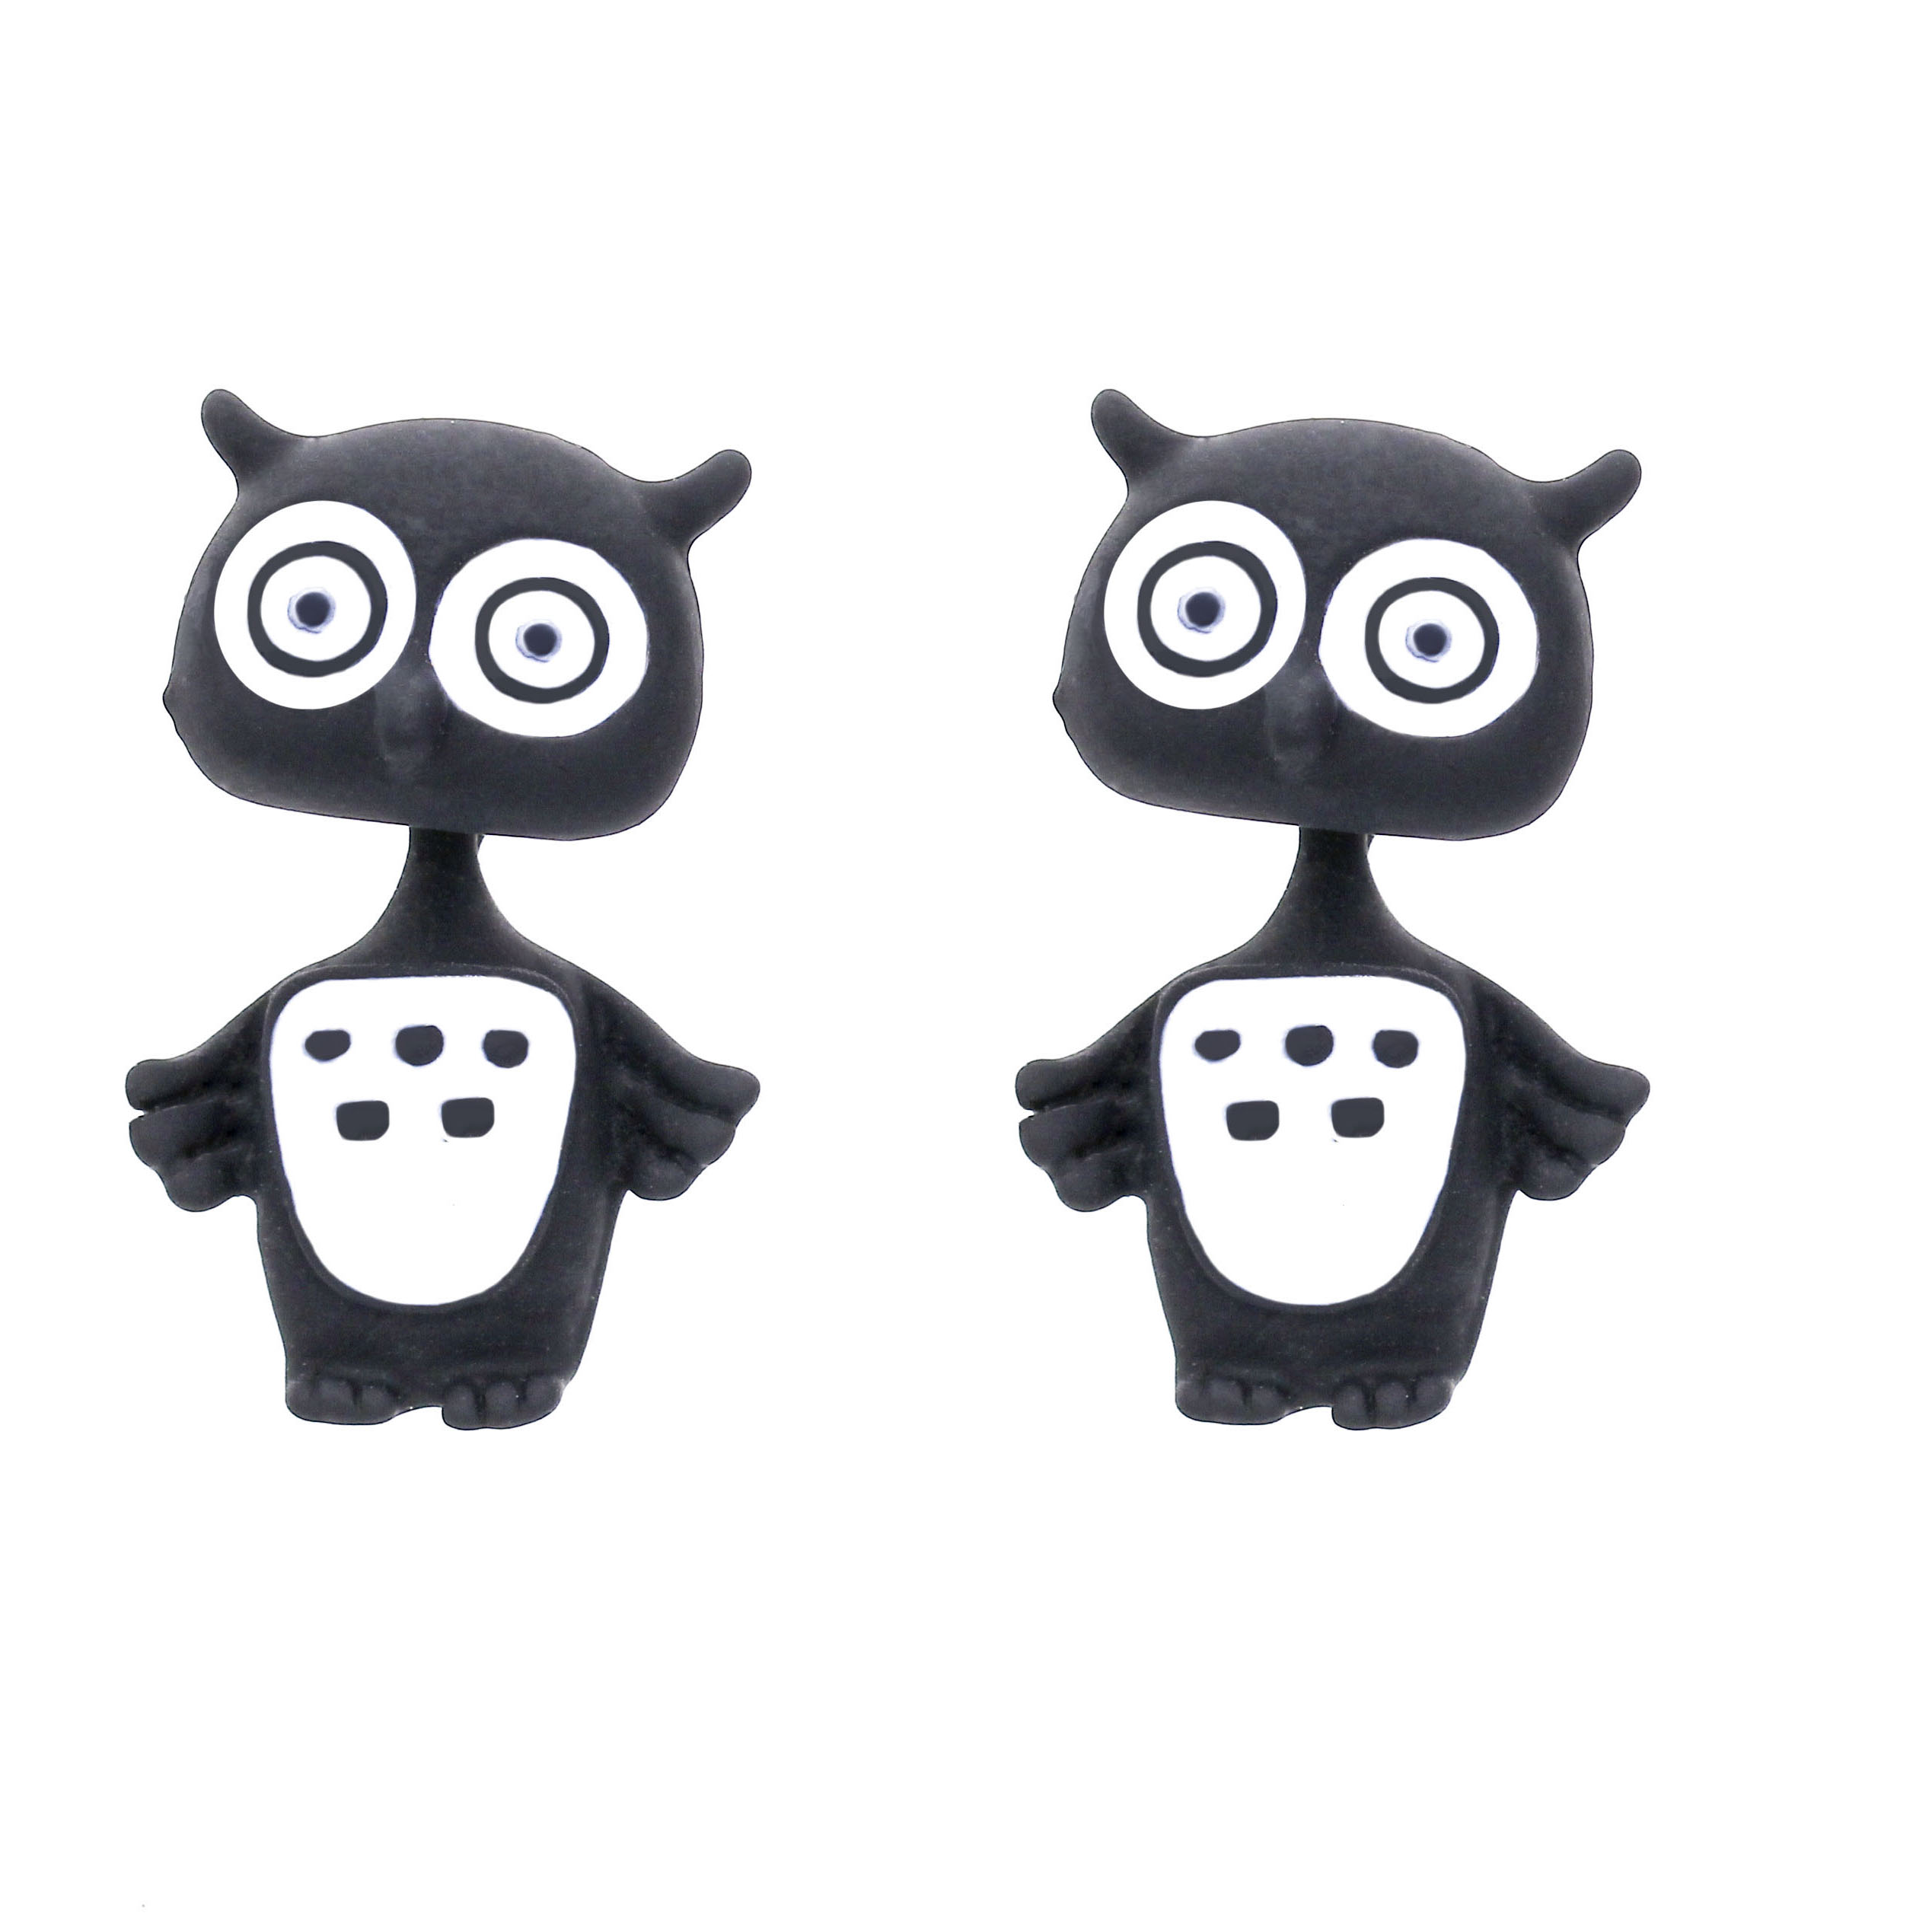 Sunshine New Multiple Color Polymer Clay 3D Owl Stud Earrings For Women Gifts Kawaii animal earrings Animal Piercing Jewelry(China (Mainland))